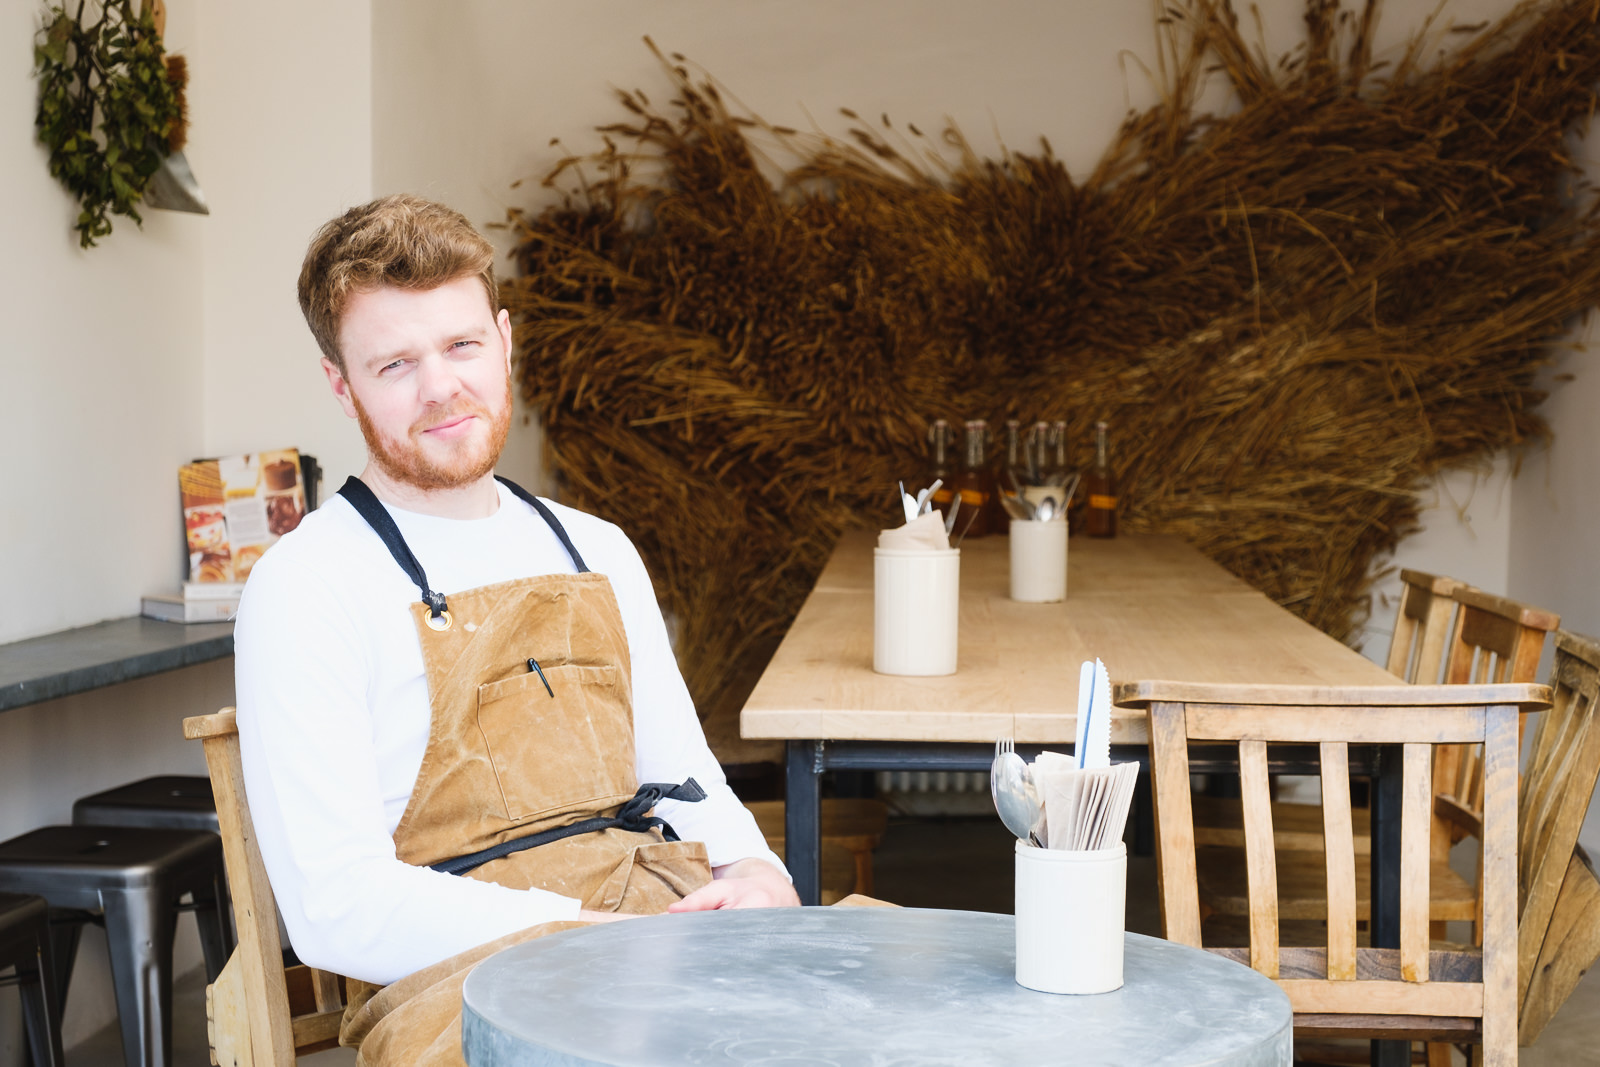 Personal Branding Photography - with new artisan bakery Landrace in Bath